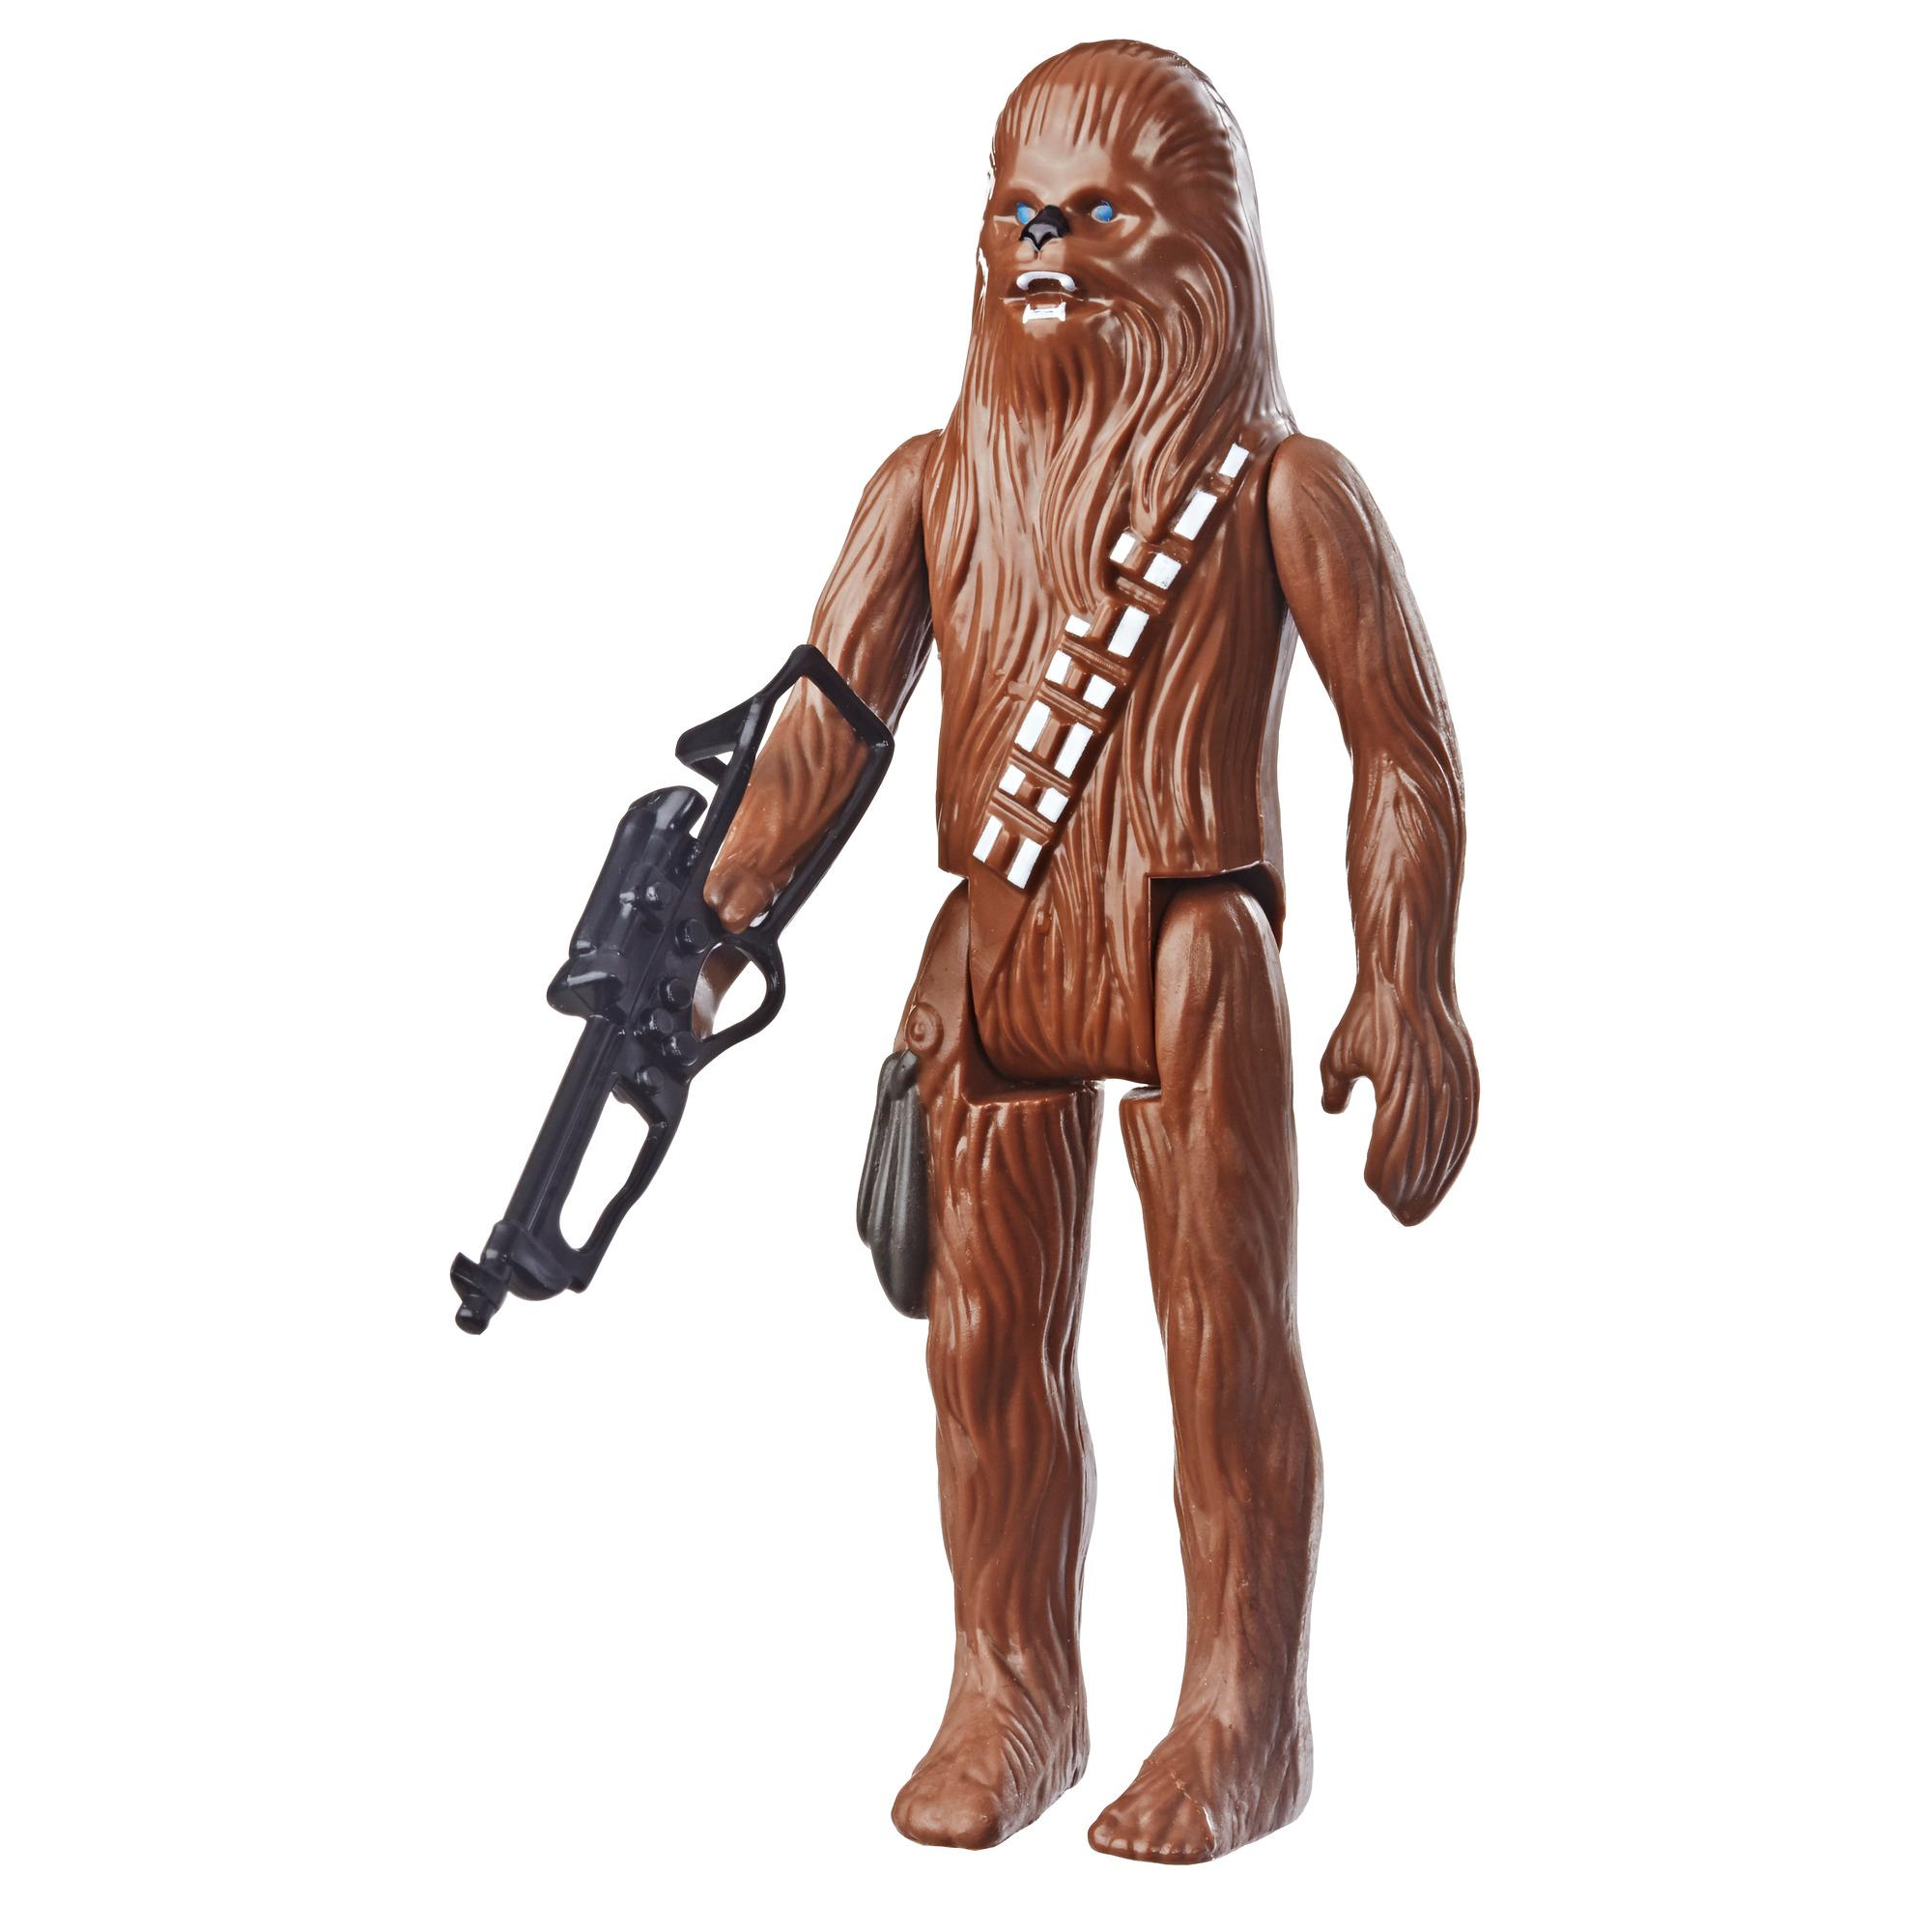 Star Wars Retro Collection Episode IV: A New Hope Chewbacca 3.75-Inch-Scale Action Figure Toy – Inspired by Classic 1970s-Sculpt and Packaging Collectible Star Wars Figure